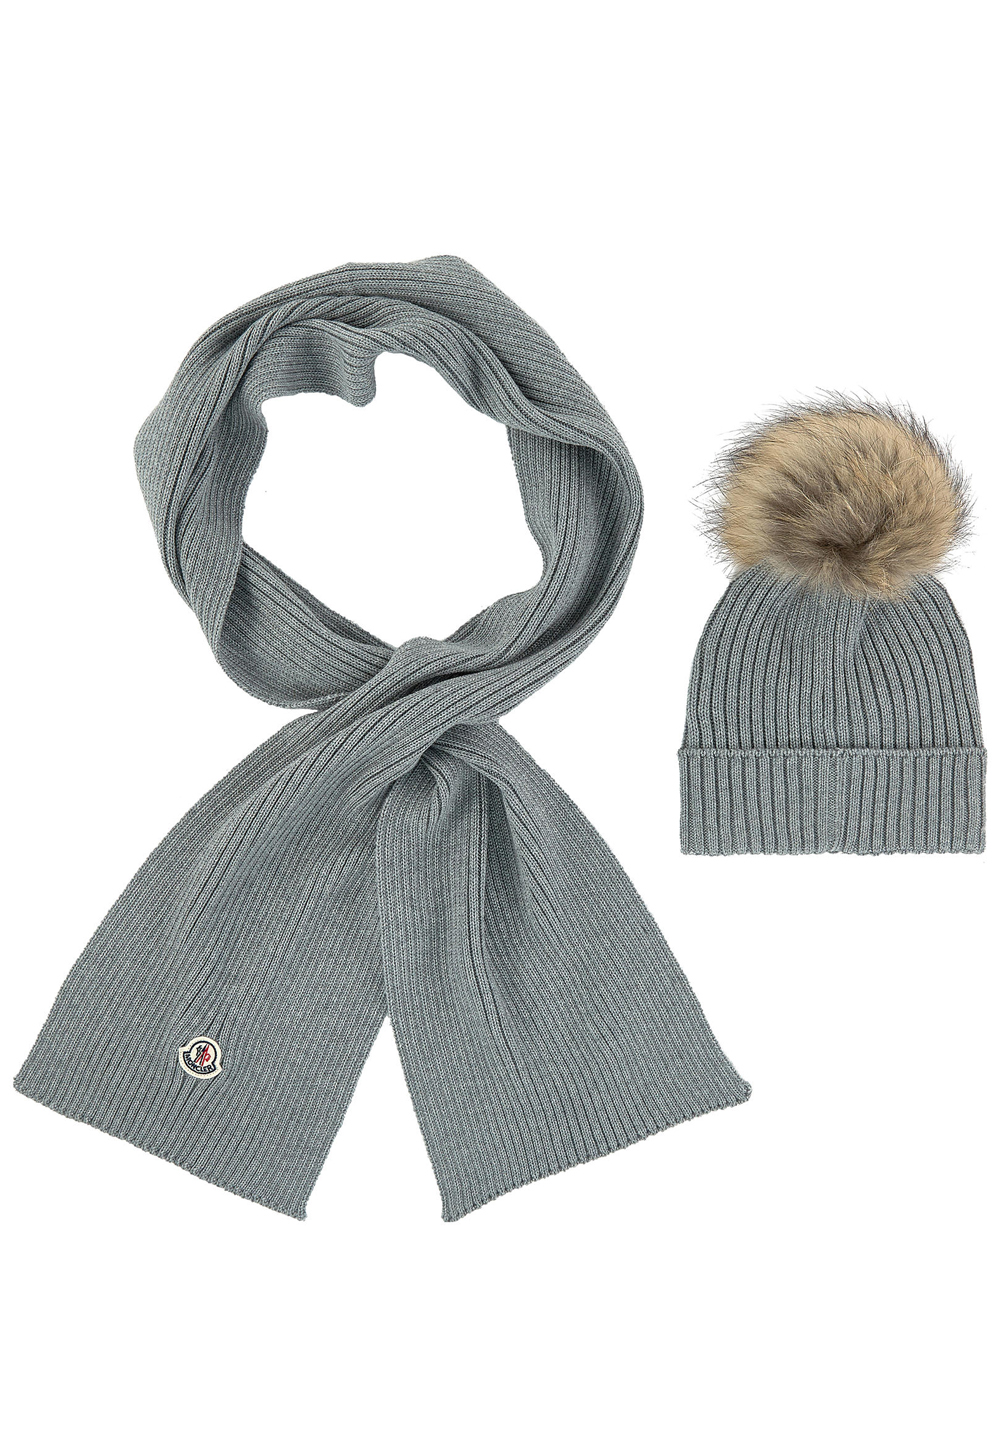 Home   Children   Designers   Moncler   Beanie and Scarf Set fe7b17b54f9